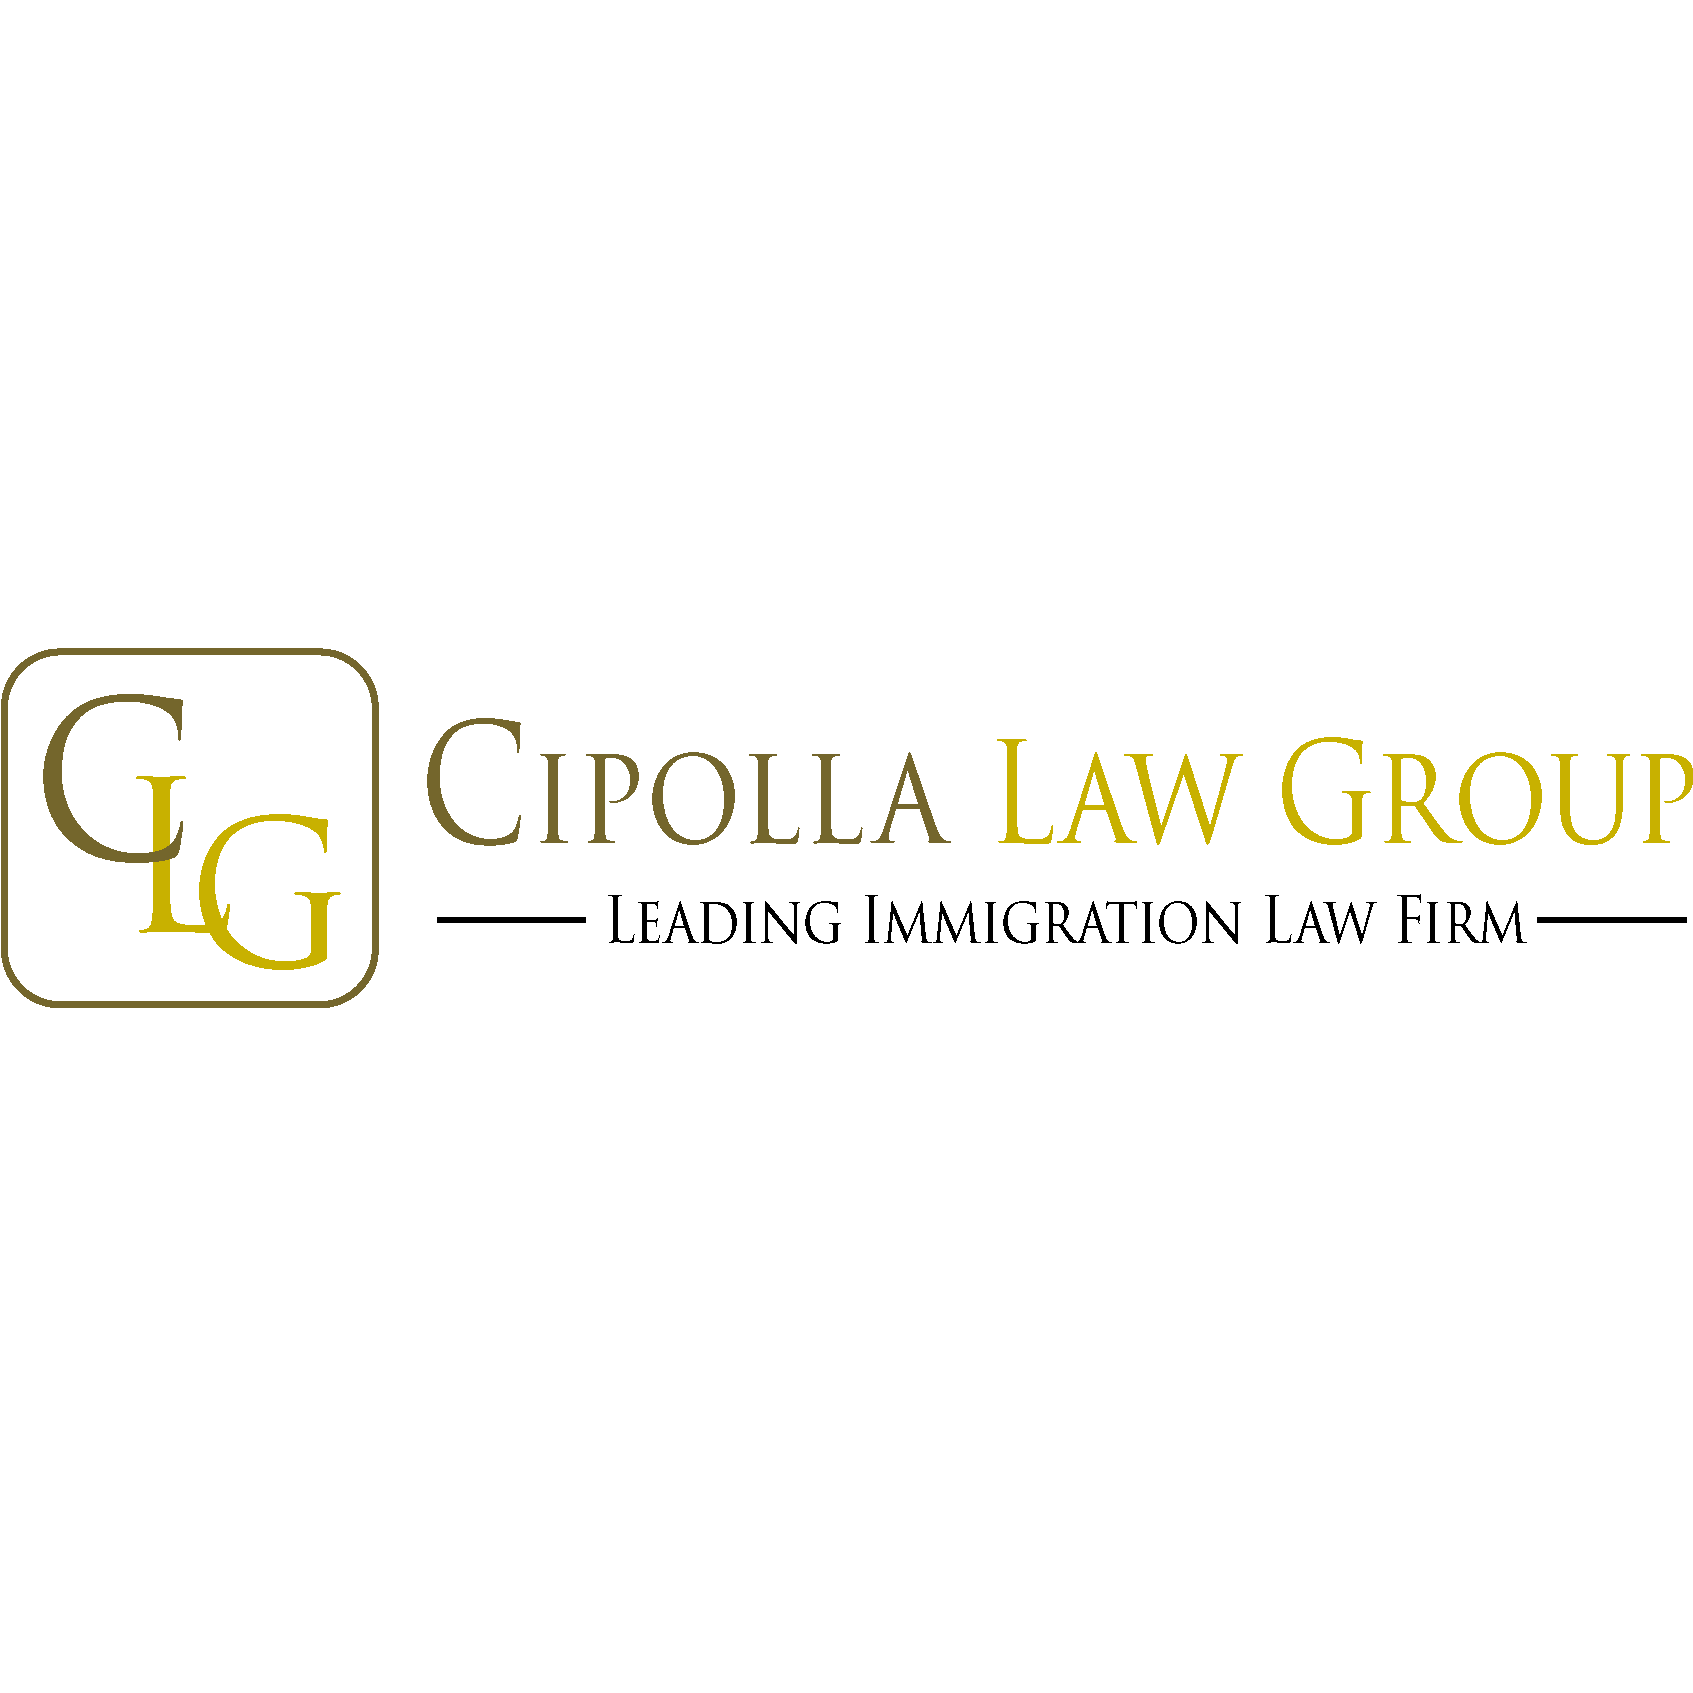 photo of Cipolla Law Group